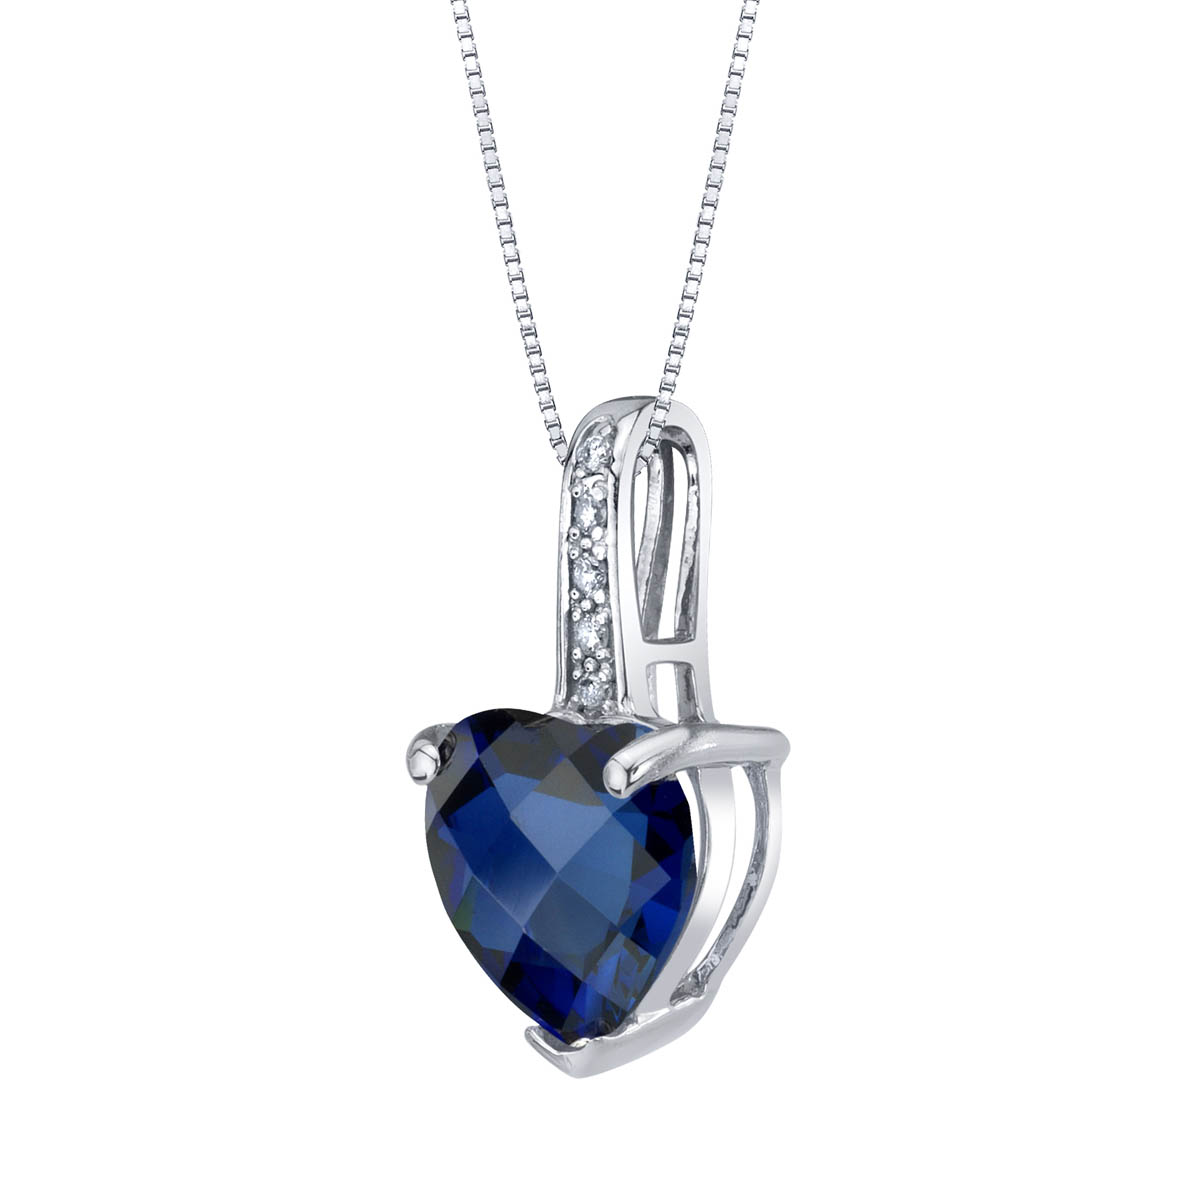 Heart Shaped Sapphire & Diamond 9ct White Gold Pendant Necklace with Silver Chain